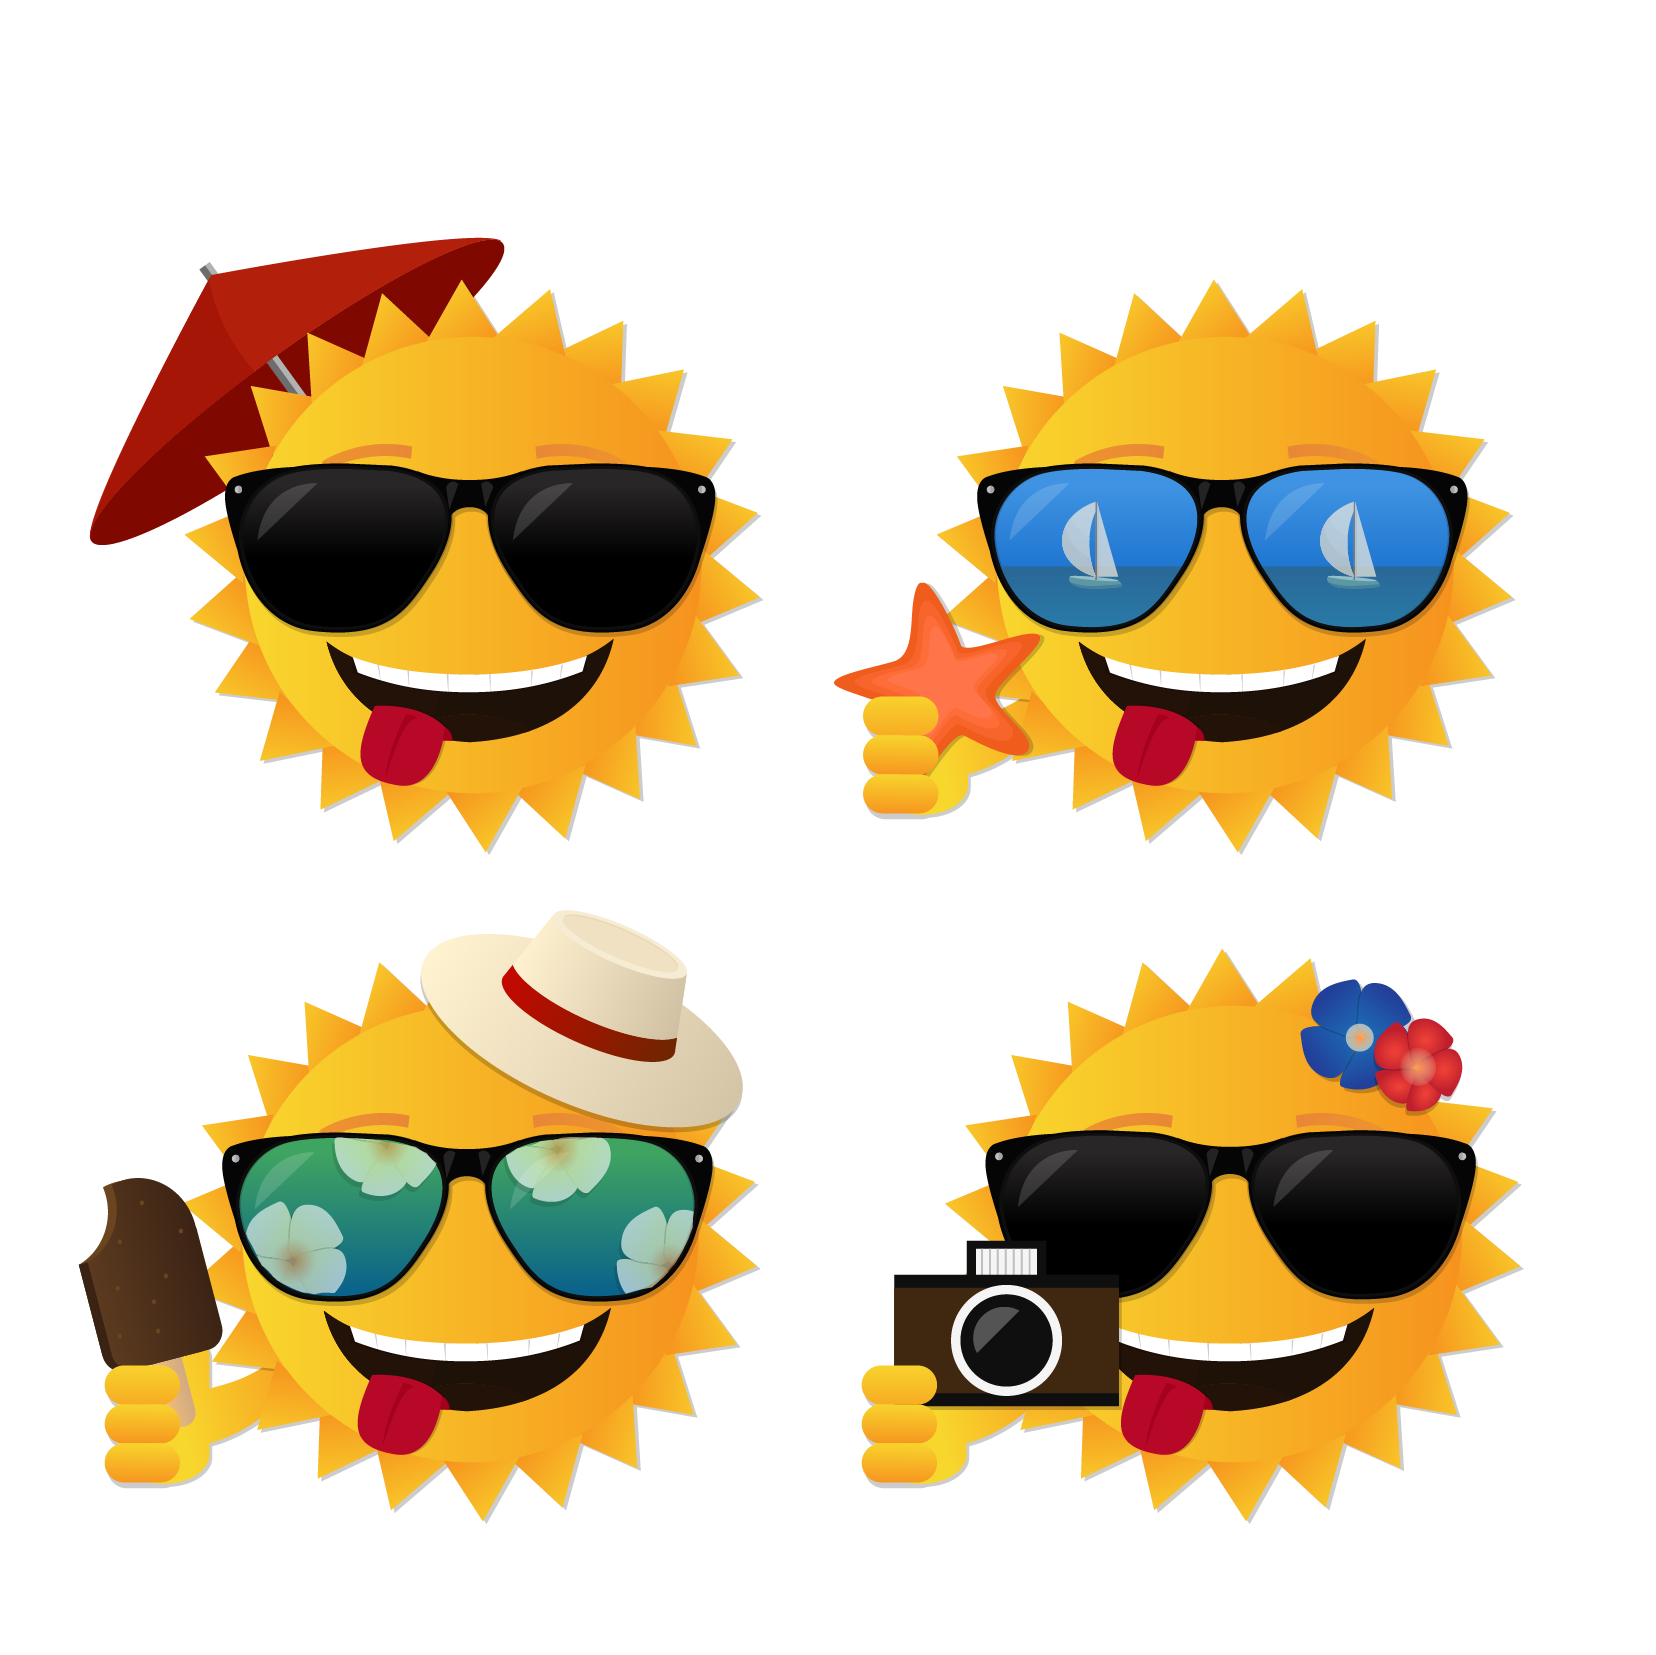 Sun with sunglasses clipart free clipart transparent library Summer vector sun 1656*1655 transprent Png Free Download - Emoticon ... clipart transparent library